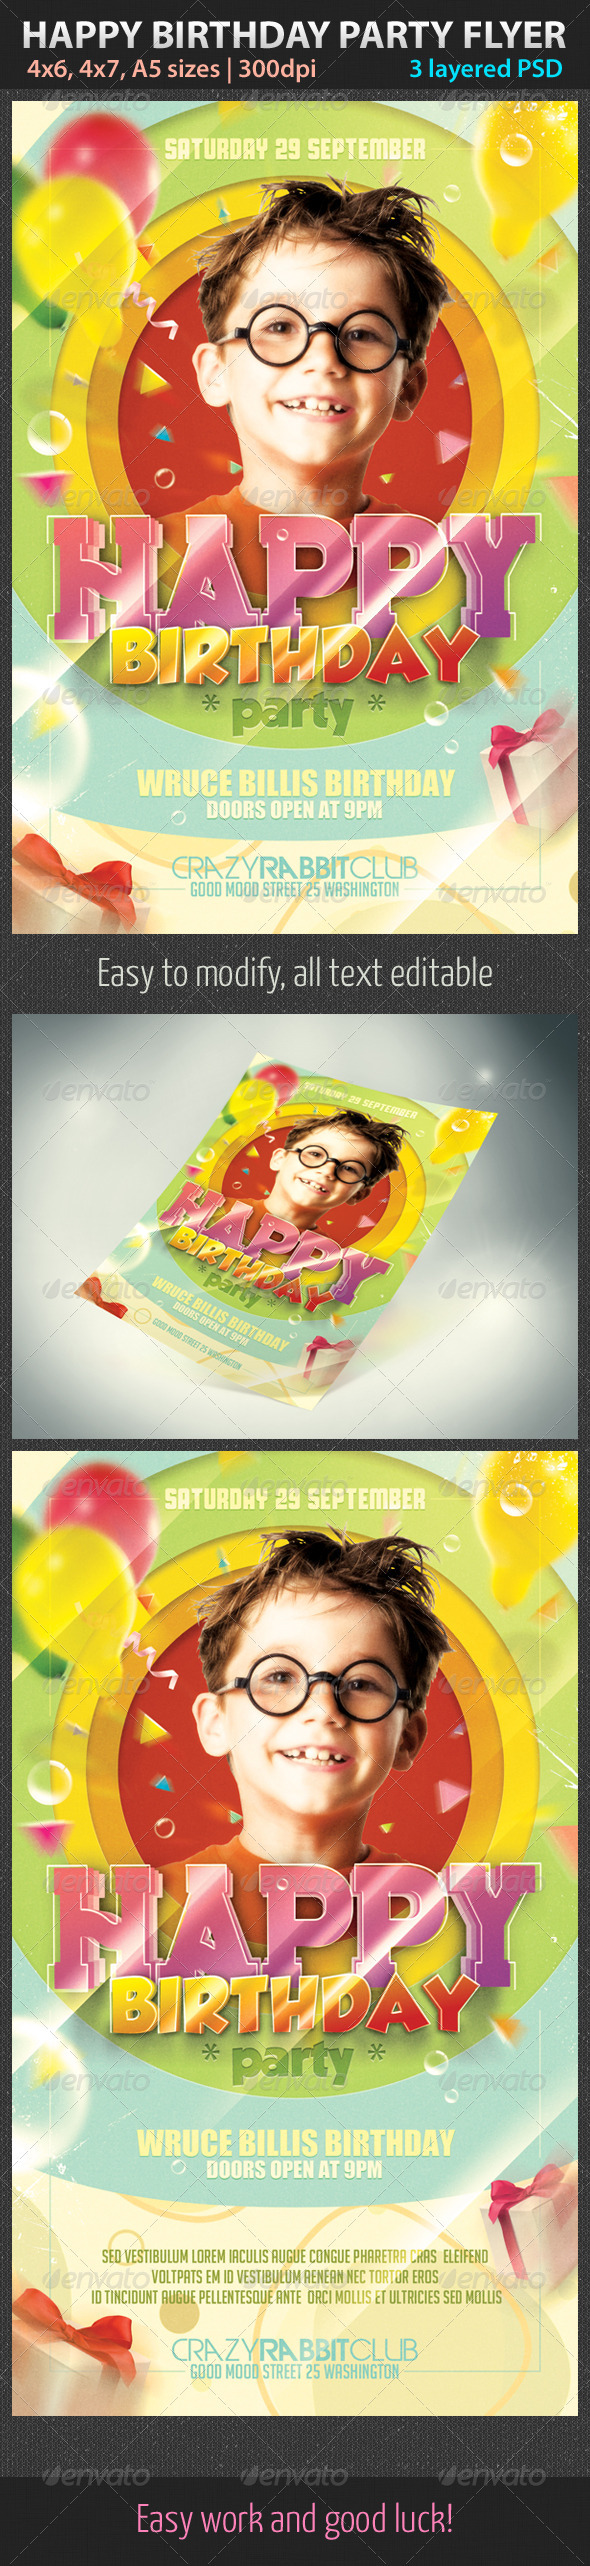 GraphicRiver Happy Birthday Party Flyer 2958296